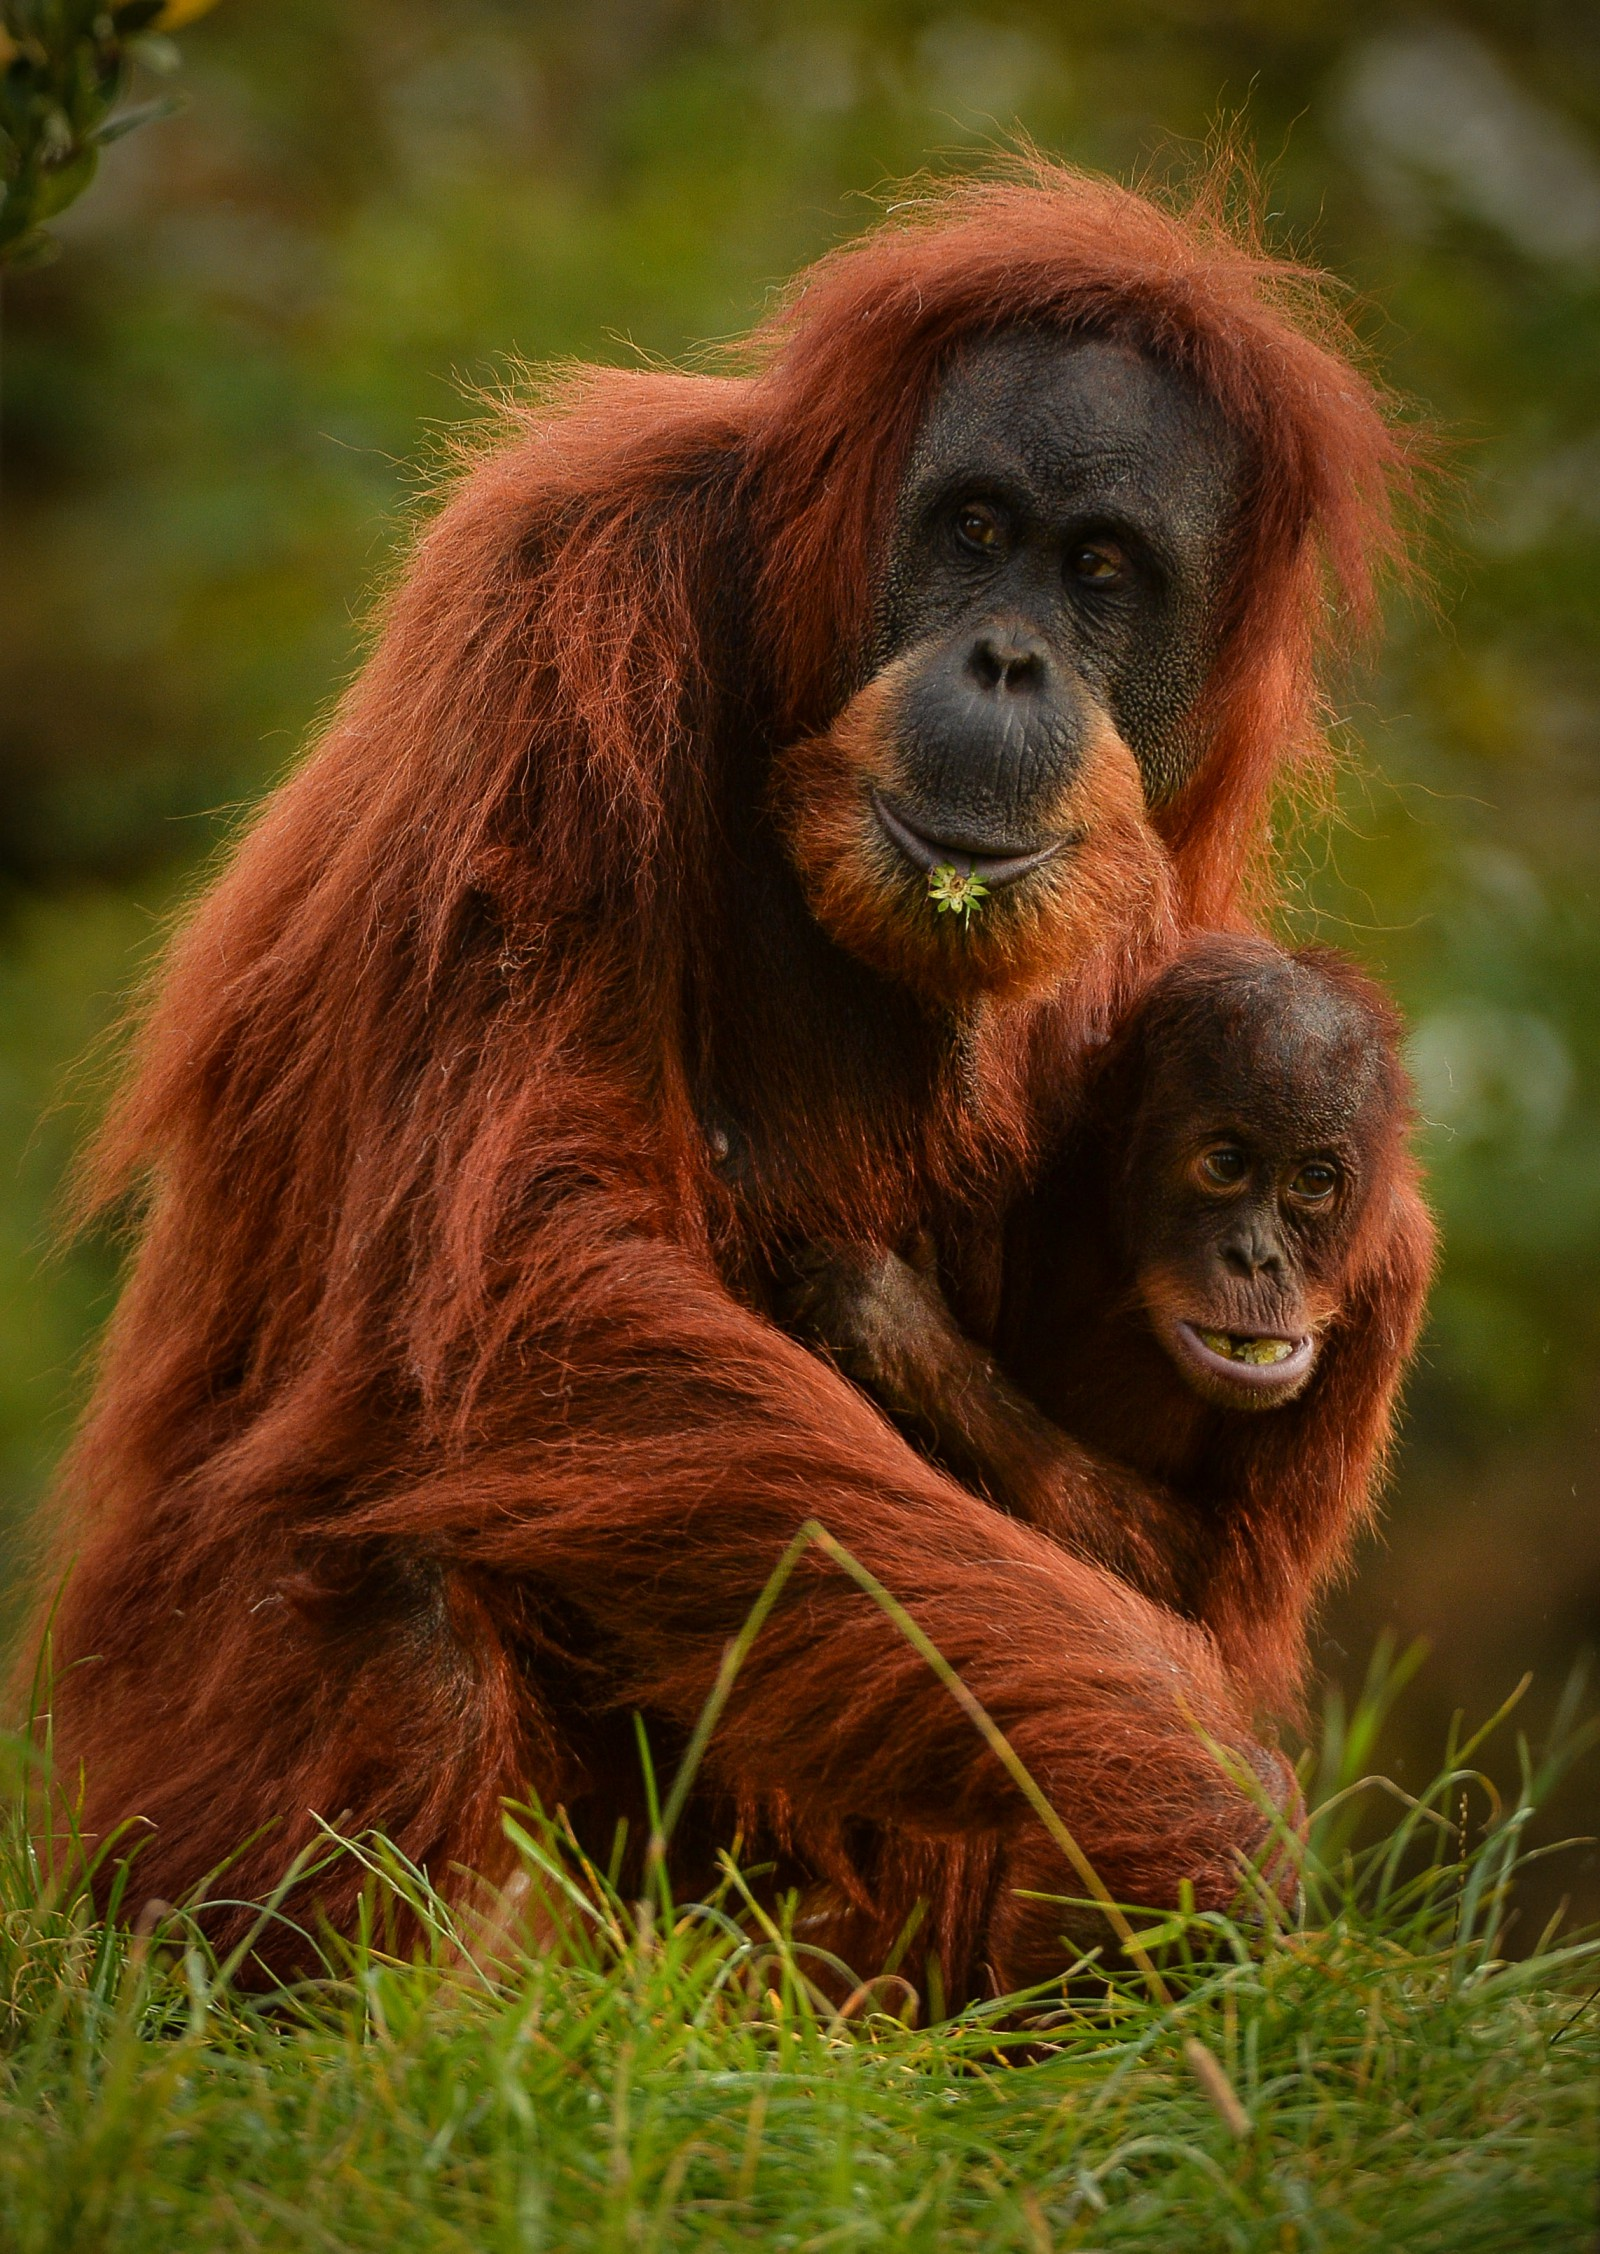 Sumatran orangutans are among the many species being pushed to the brink of extinction by unsustainable oil palm plantations.